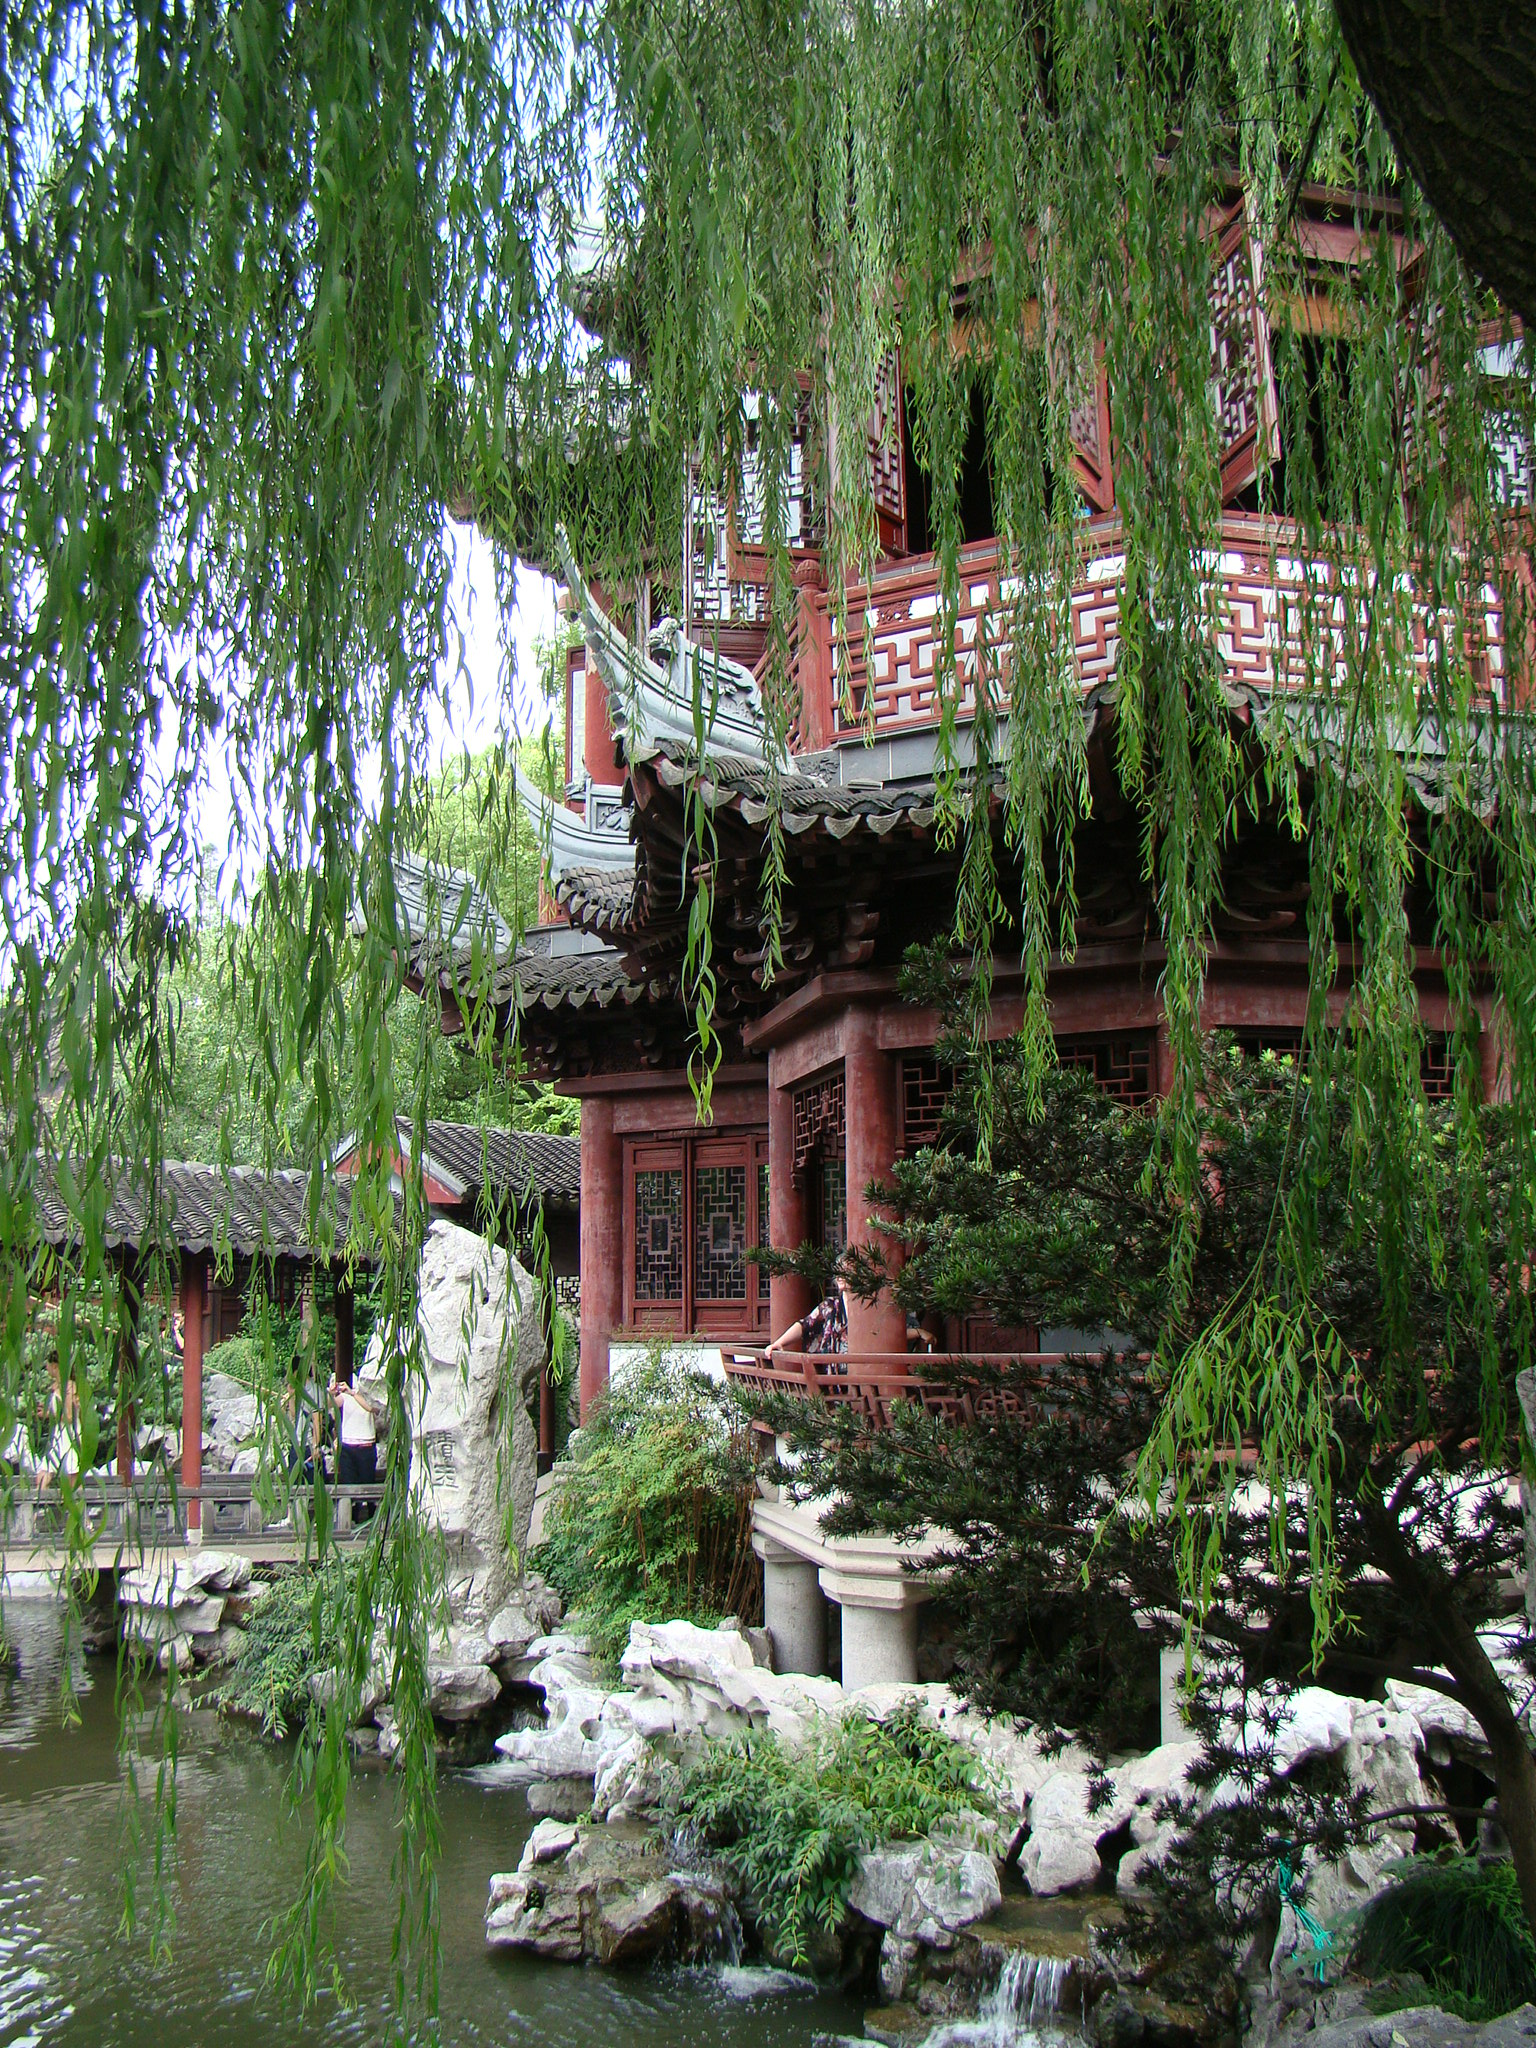 Yu yuan classical garden in the heart of Shanghai